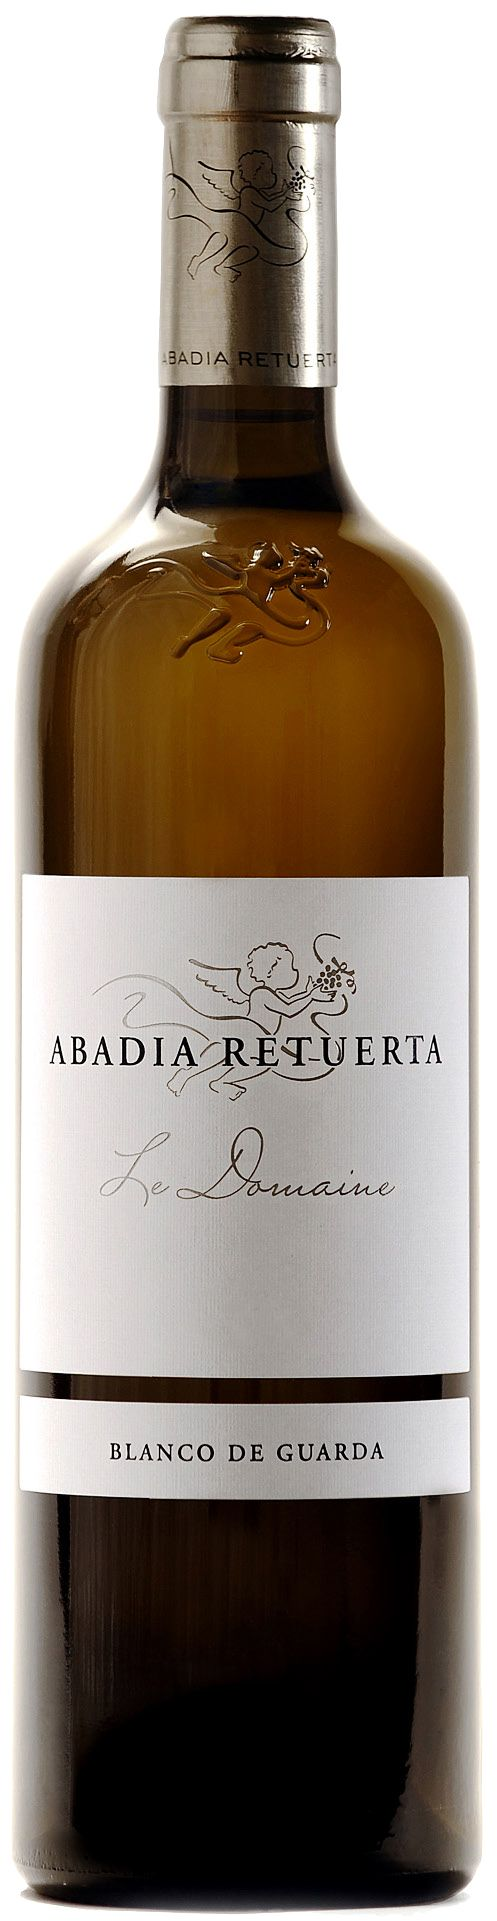 Abadia Retuerta, Le Domaine Blanco De Guarda, 2011